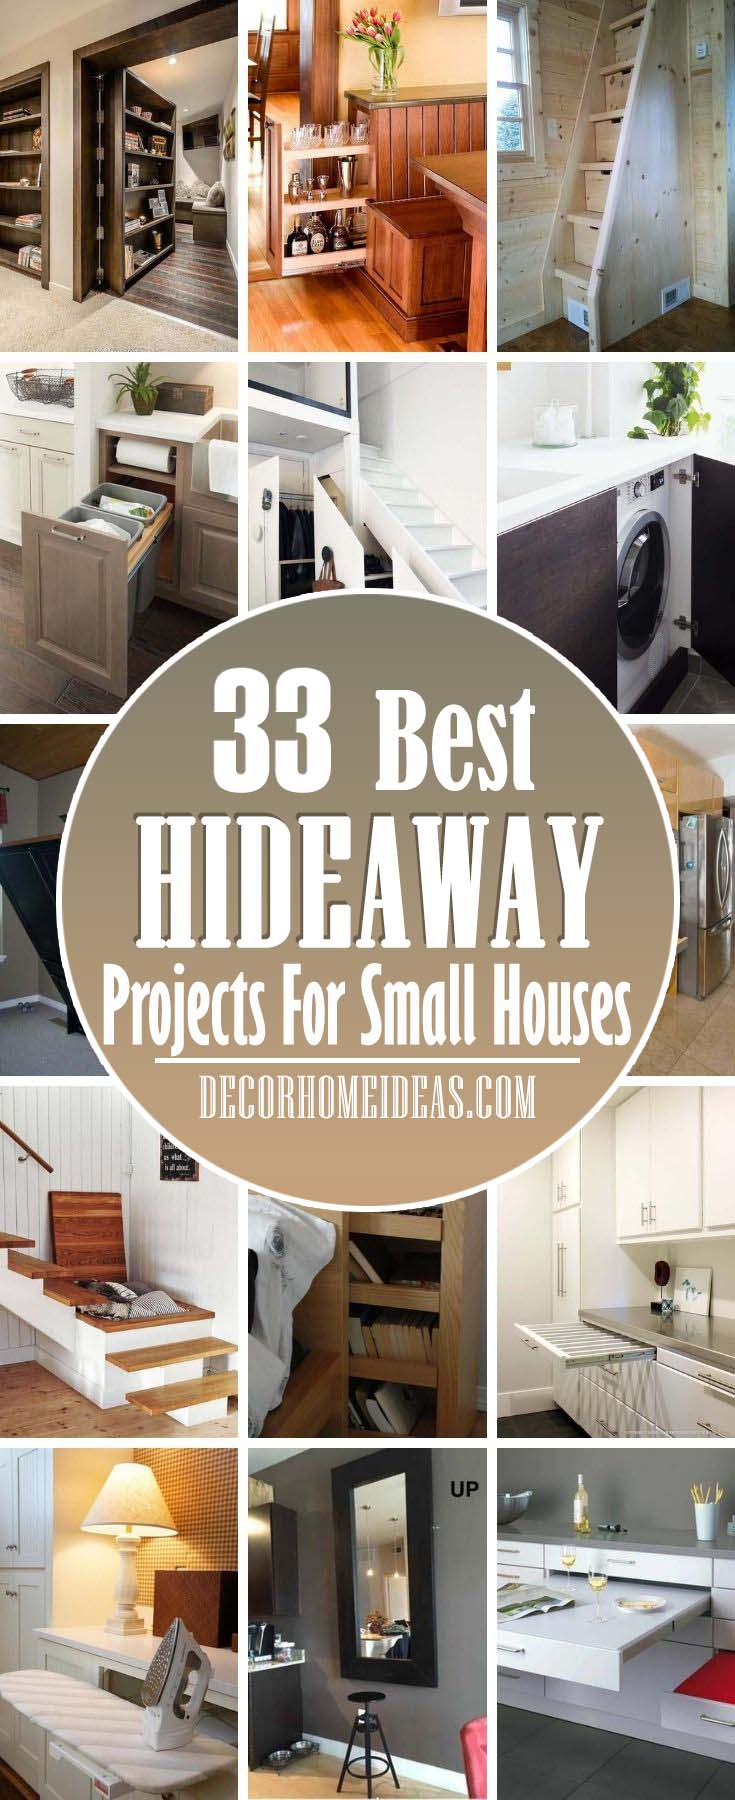 Best Hideaway Projects. Hideaway projects can help you add more storage while keeping the visual design of your interior. #decorhomeideas